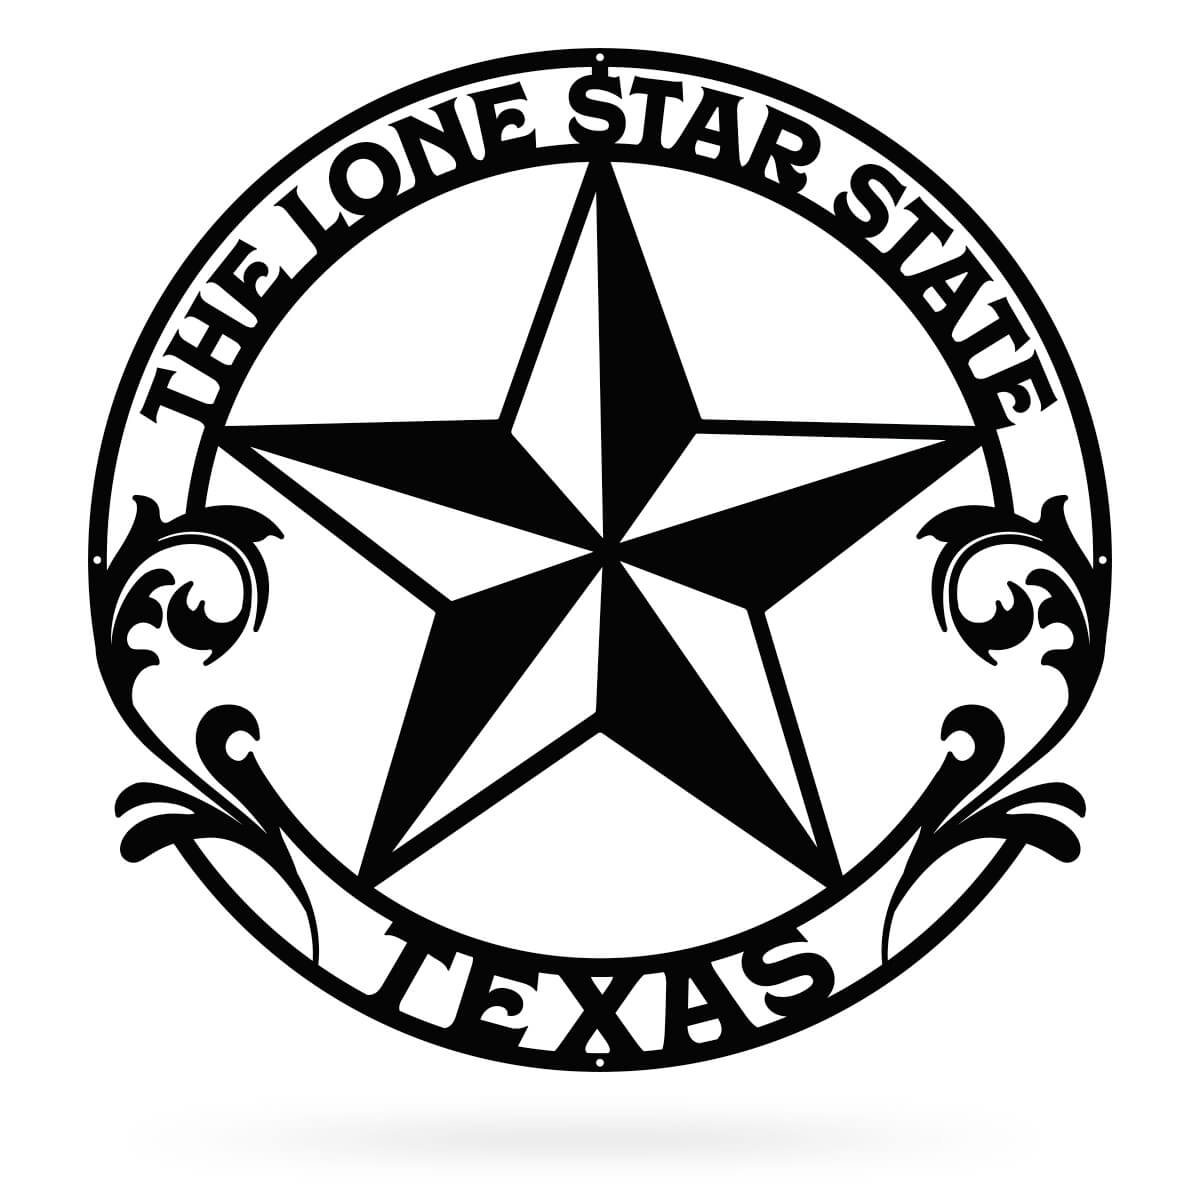 "The Lone Star State Texas 24"" / Black - RealSteel Center"